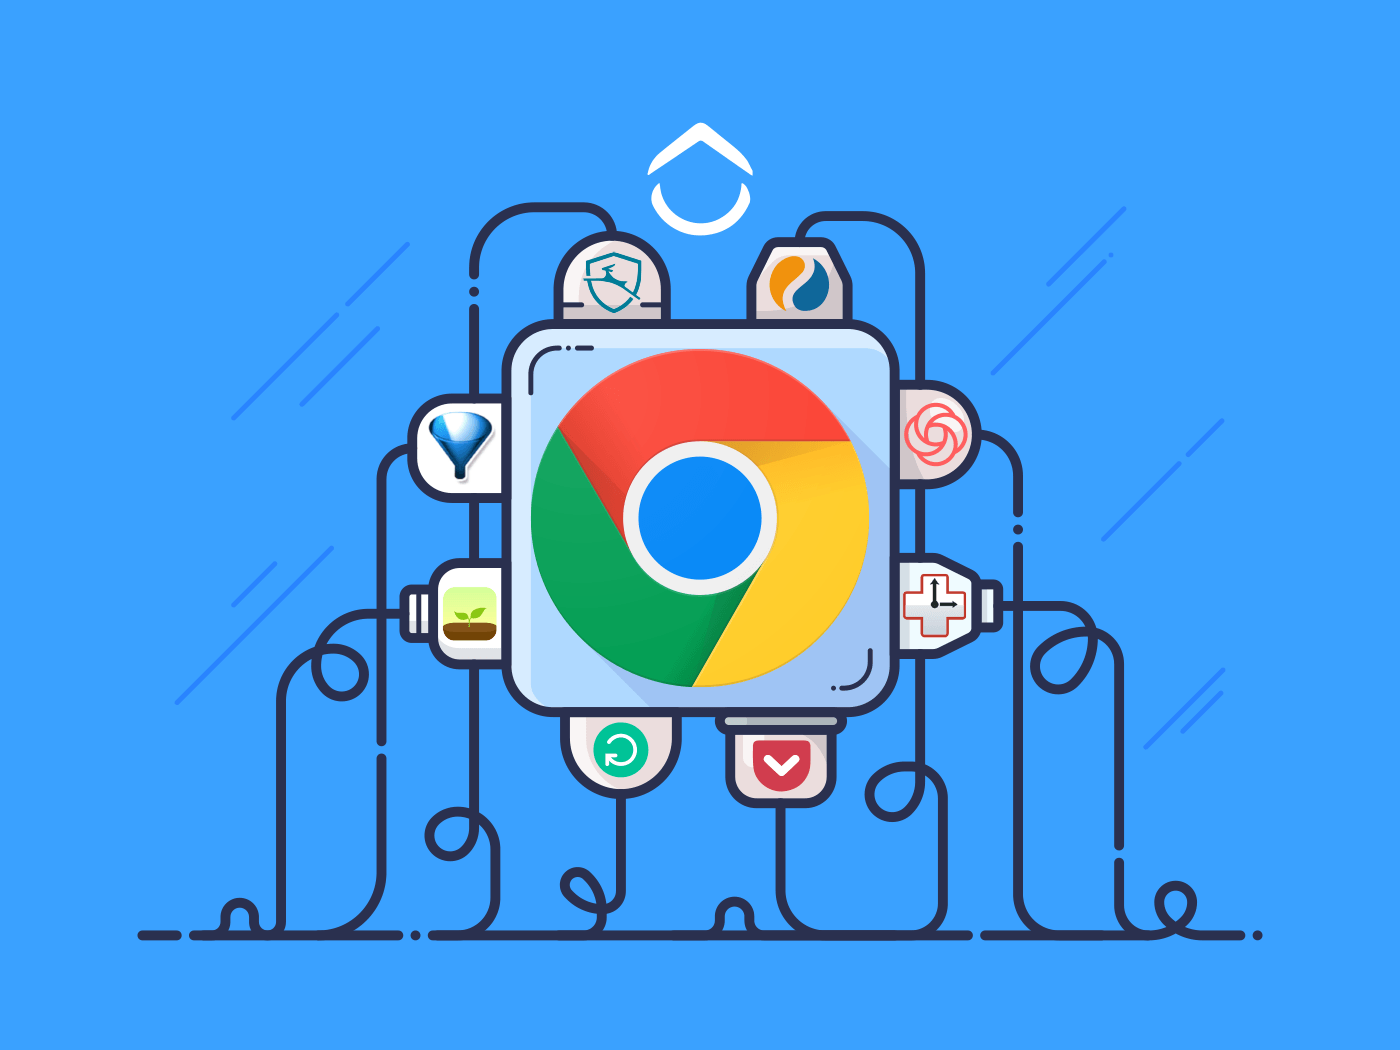 Worried About Internet Privacy? Google Chrome Is Not The Best Bowser For You, Reports Suggest